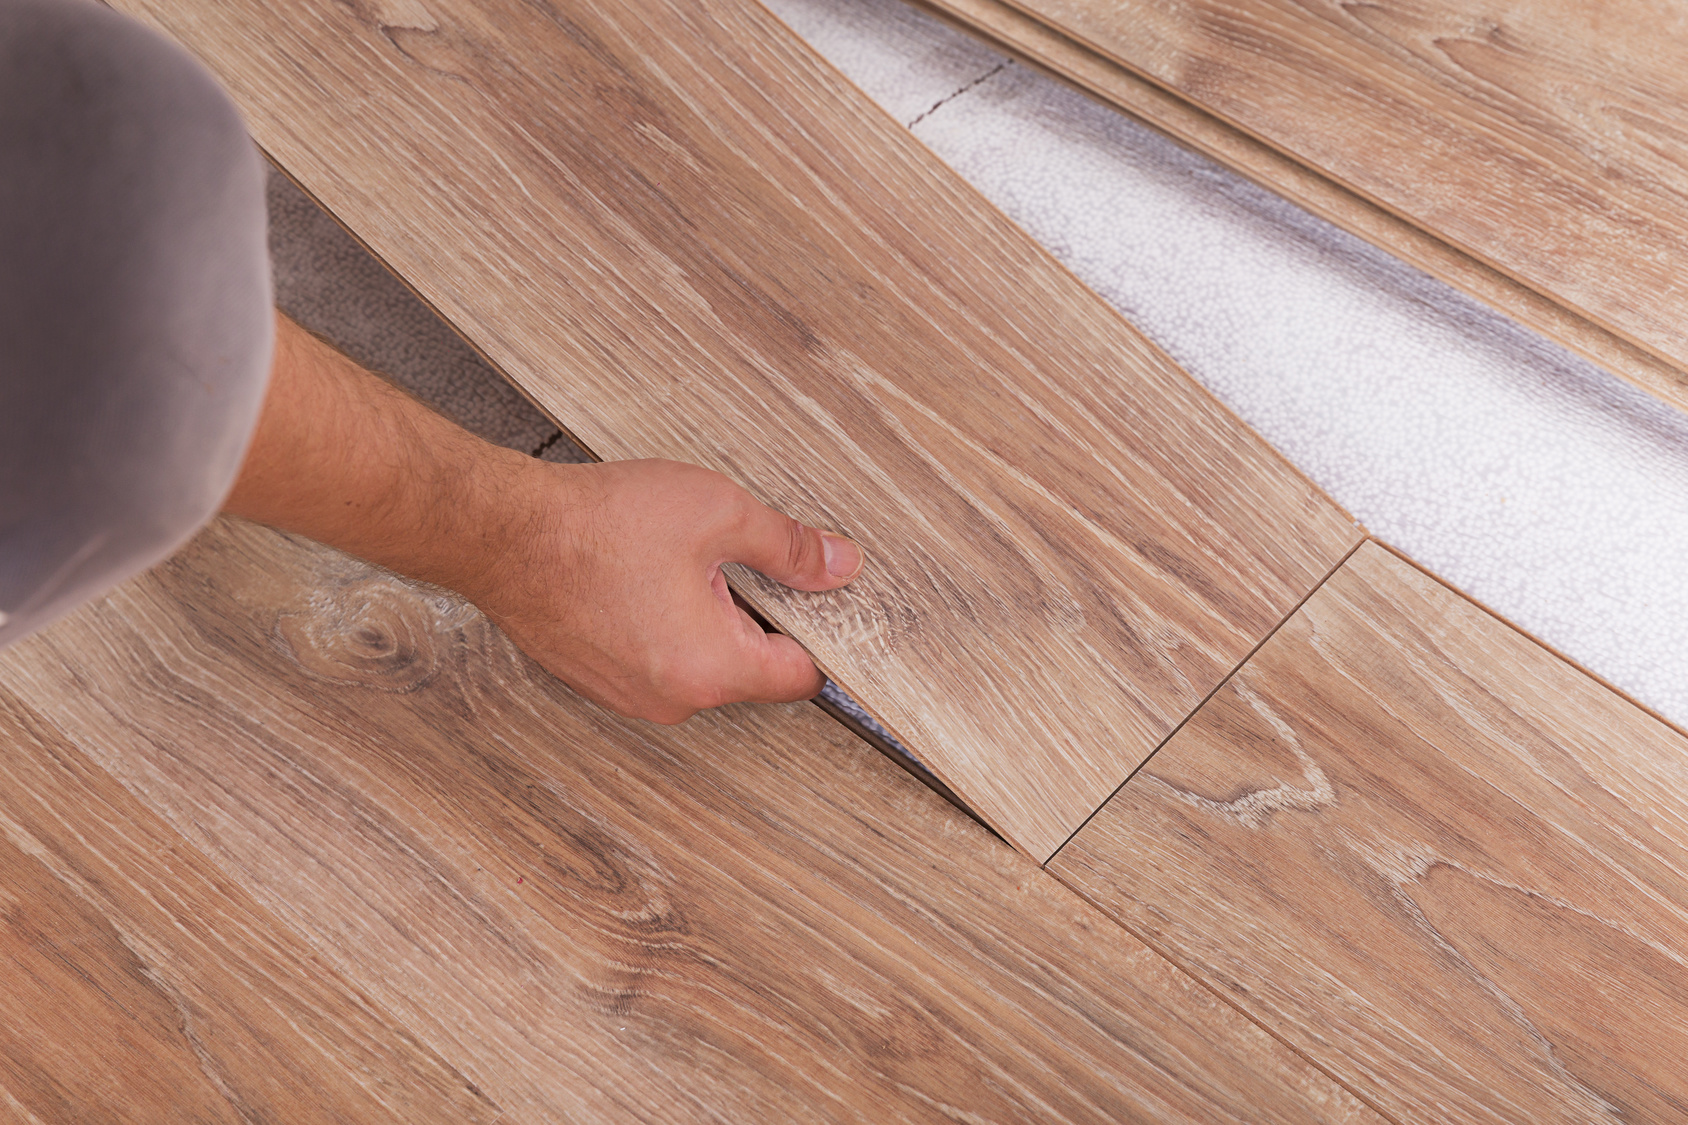 Professional flooring installation in a San Diego, CA home